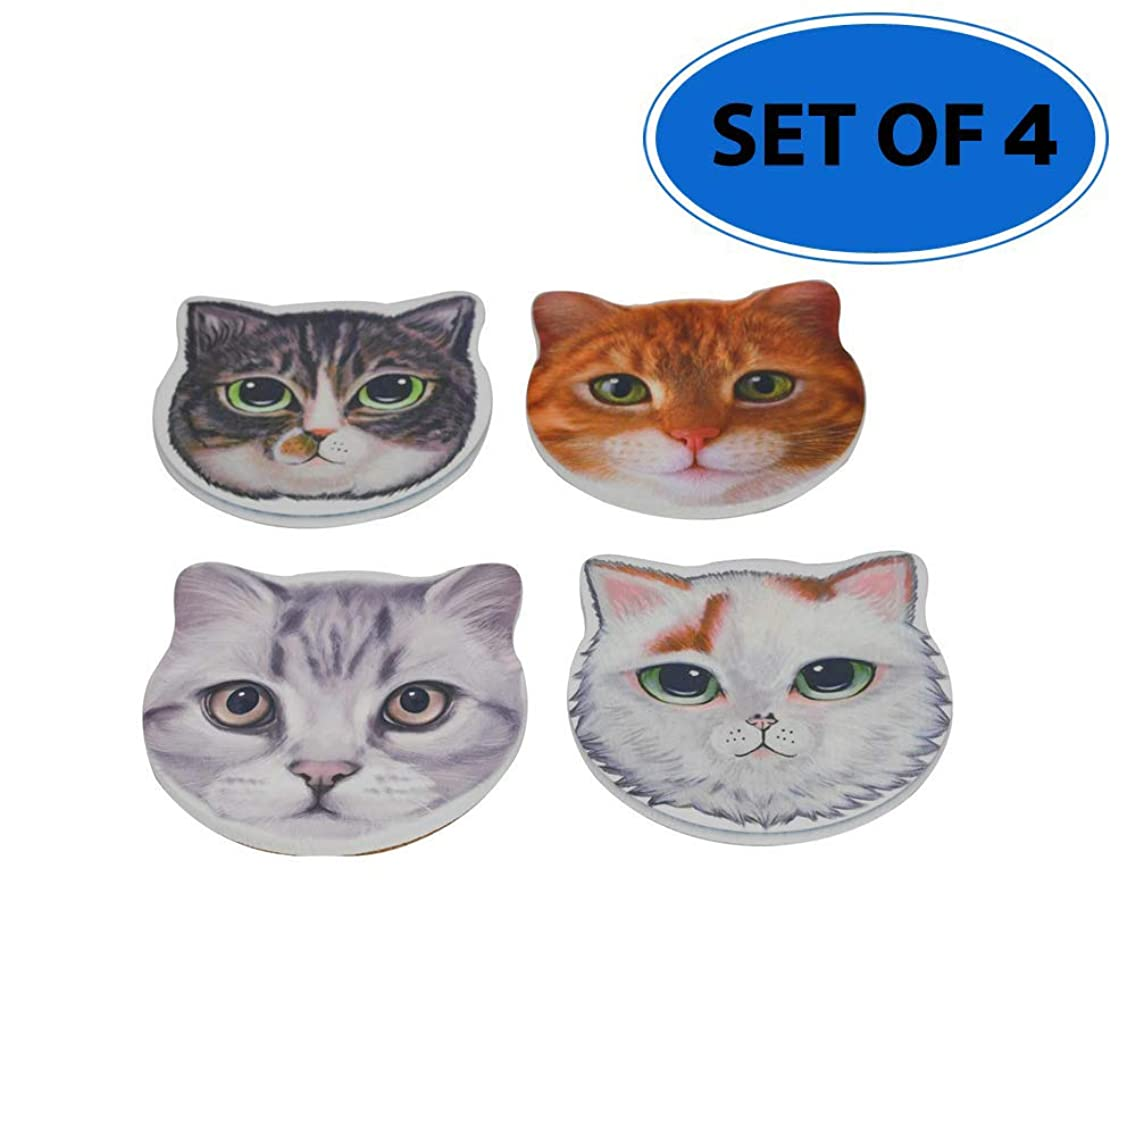 Ceramic Cat Face Coasters   Set of Four Kitty Designs - by Home-X